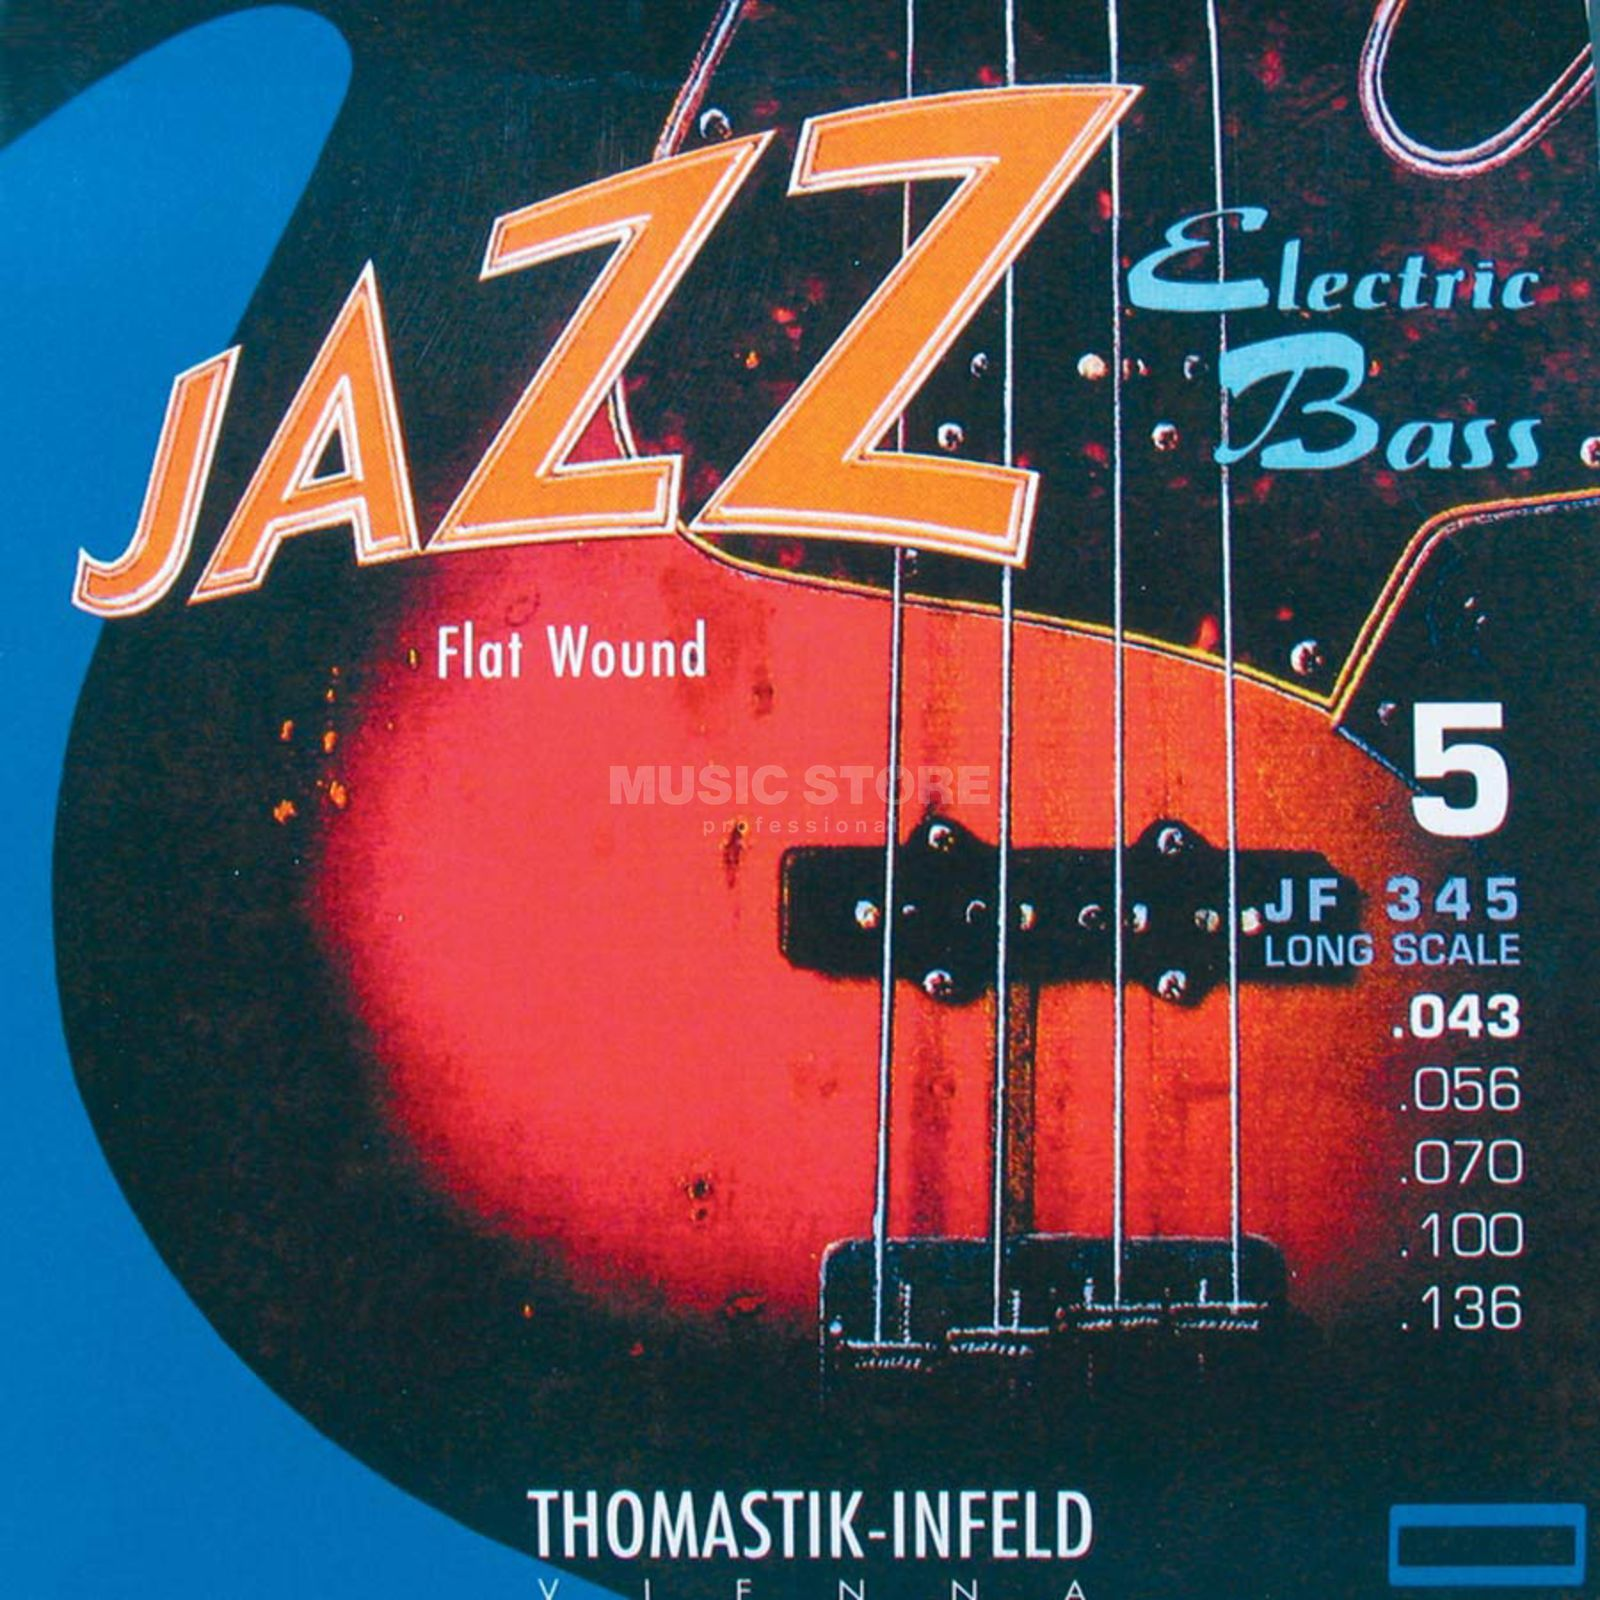 Thomastik 5er Bass JF 345 43-136 Nickel Flat Wound Produktbild